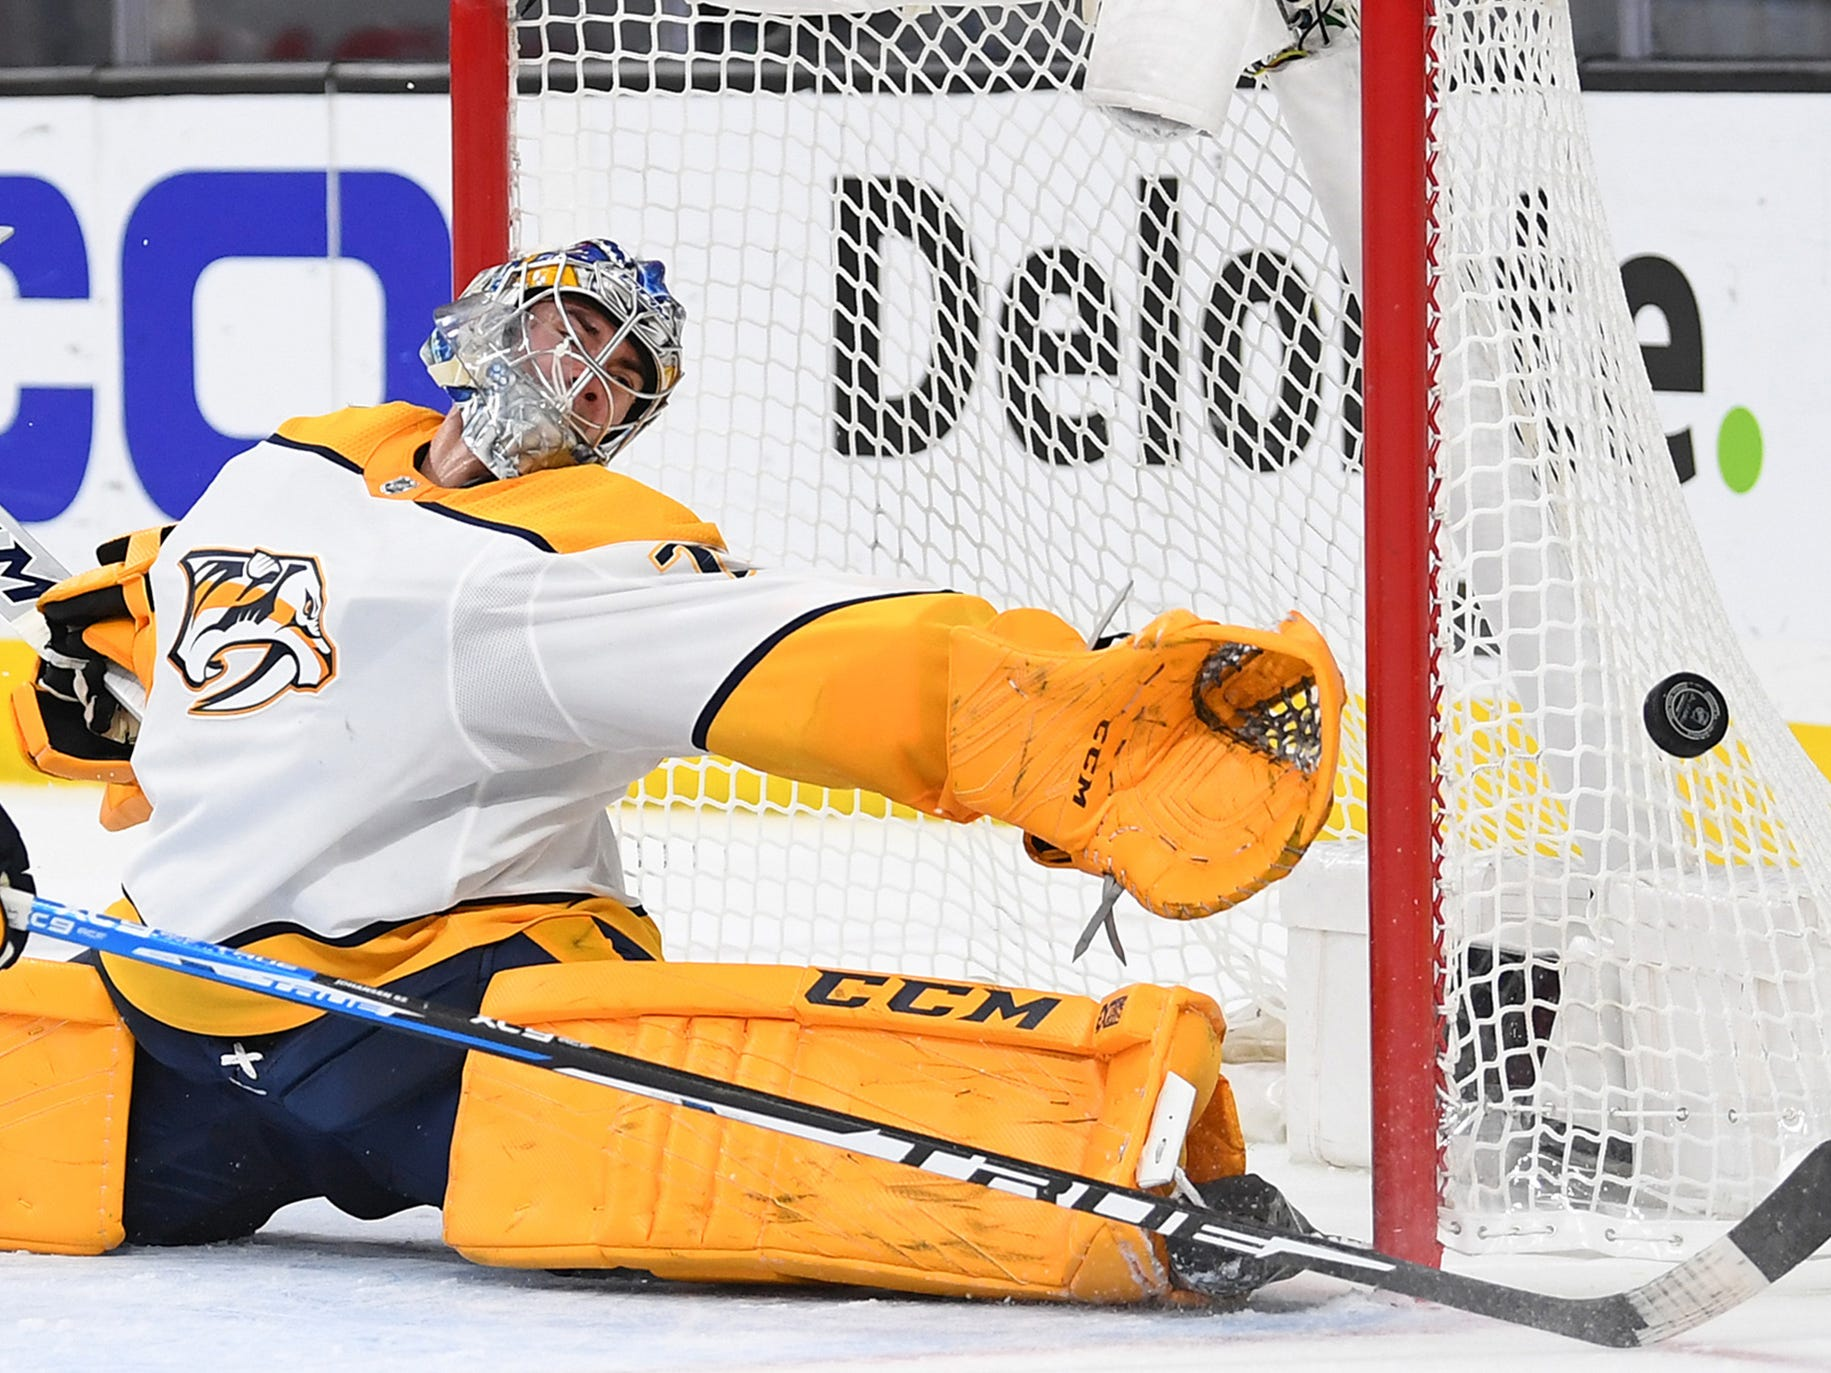 Feb. 16, 2019 -- Golden Knights 5, Predators 1 --Nashville Predators goaltender Juuse Saros (74) reaches to cover the left post during a second period Vegas Golden Knights scoring attempt at T-Mobile Arena.